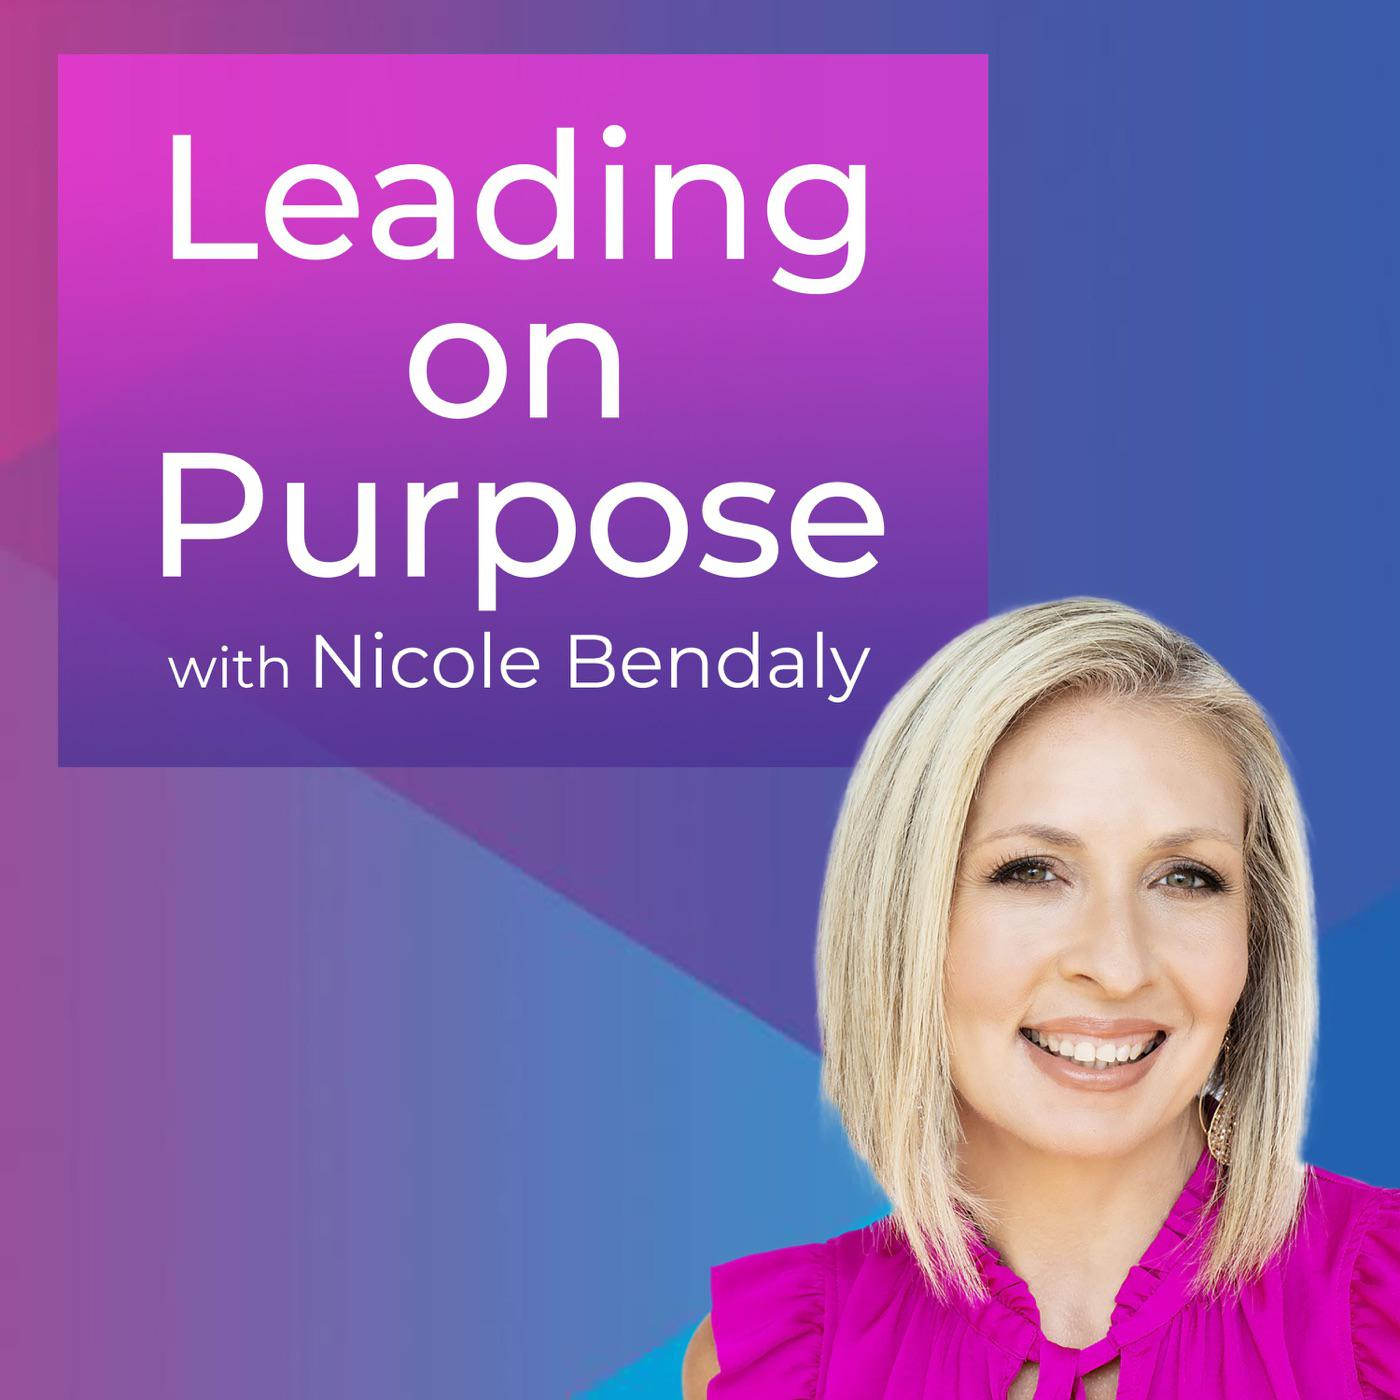 Leading on Purpose with Nicole Bendaly